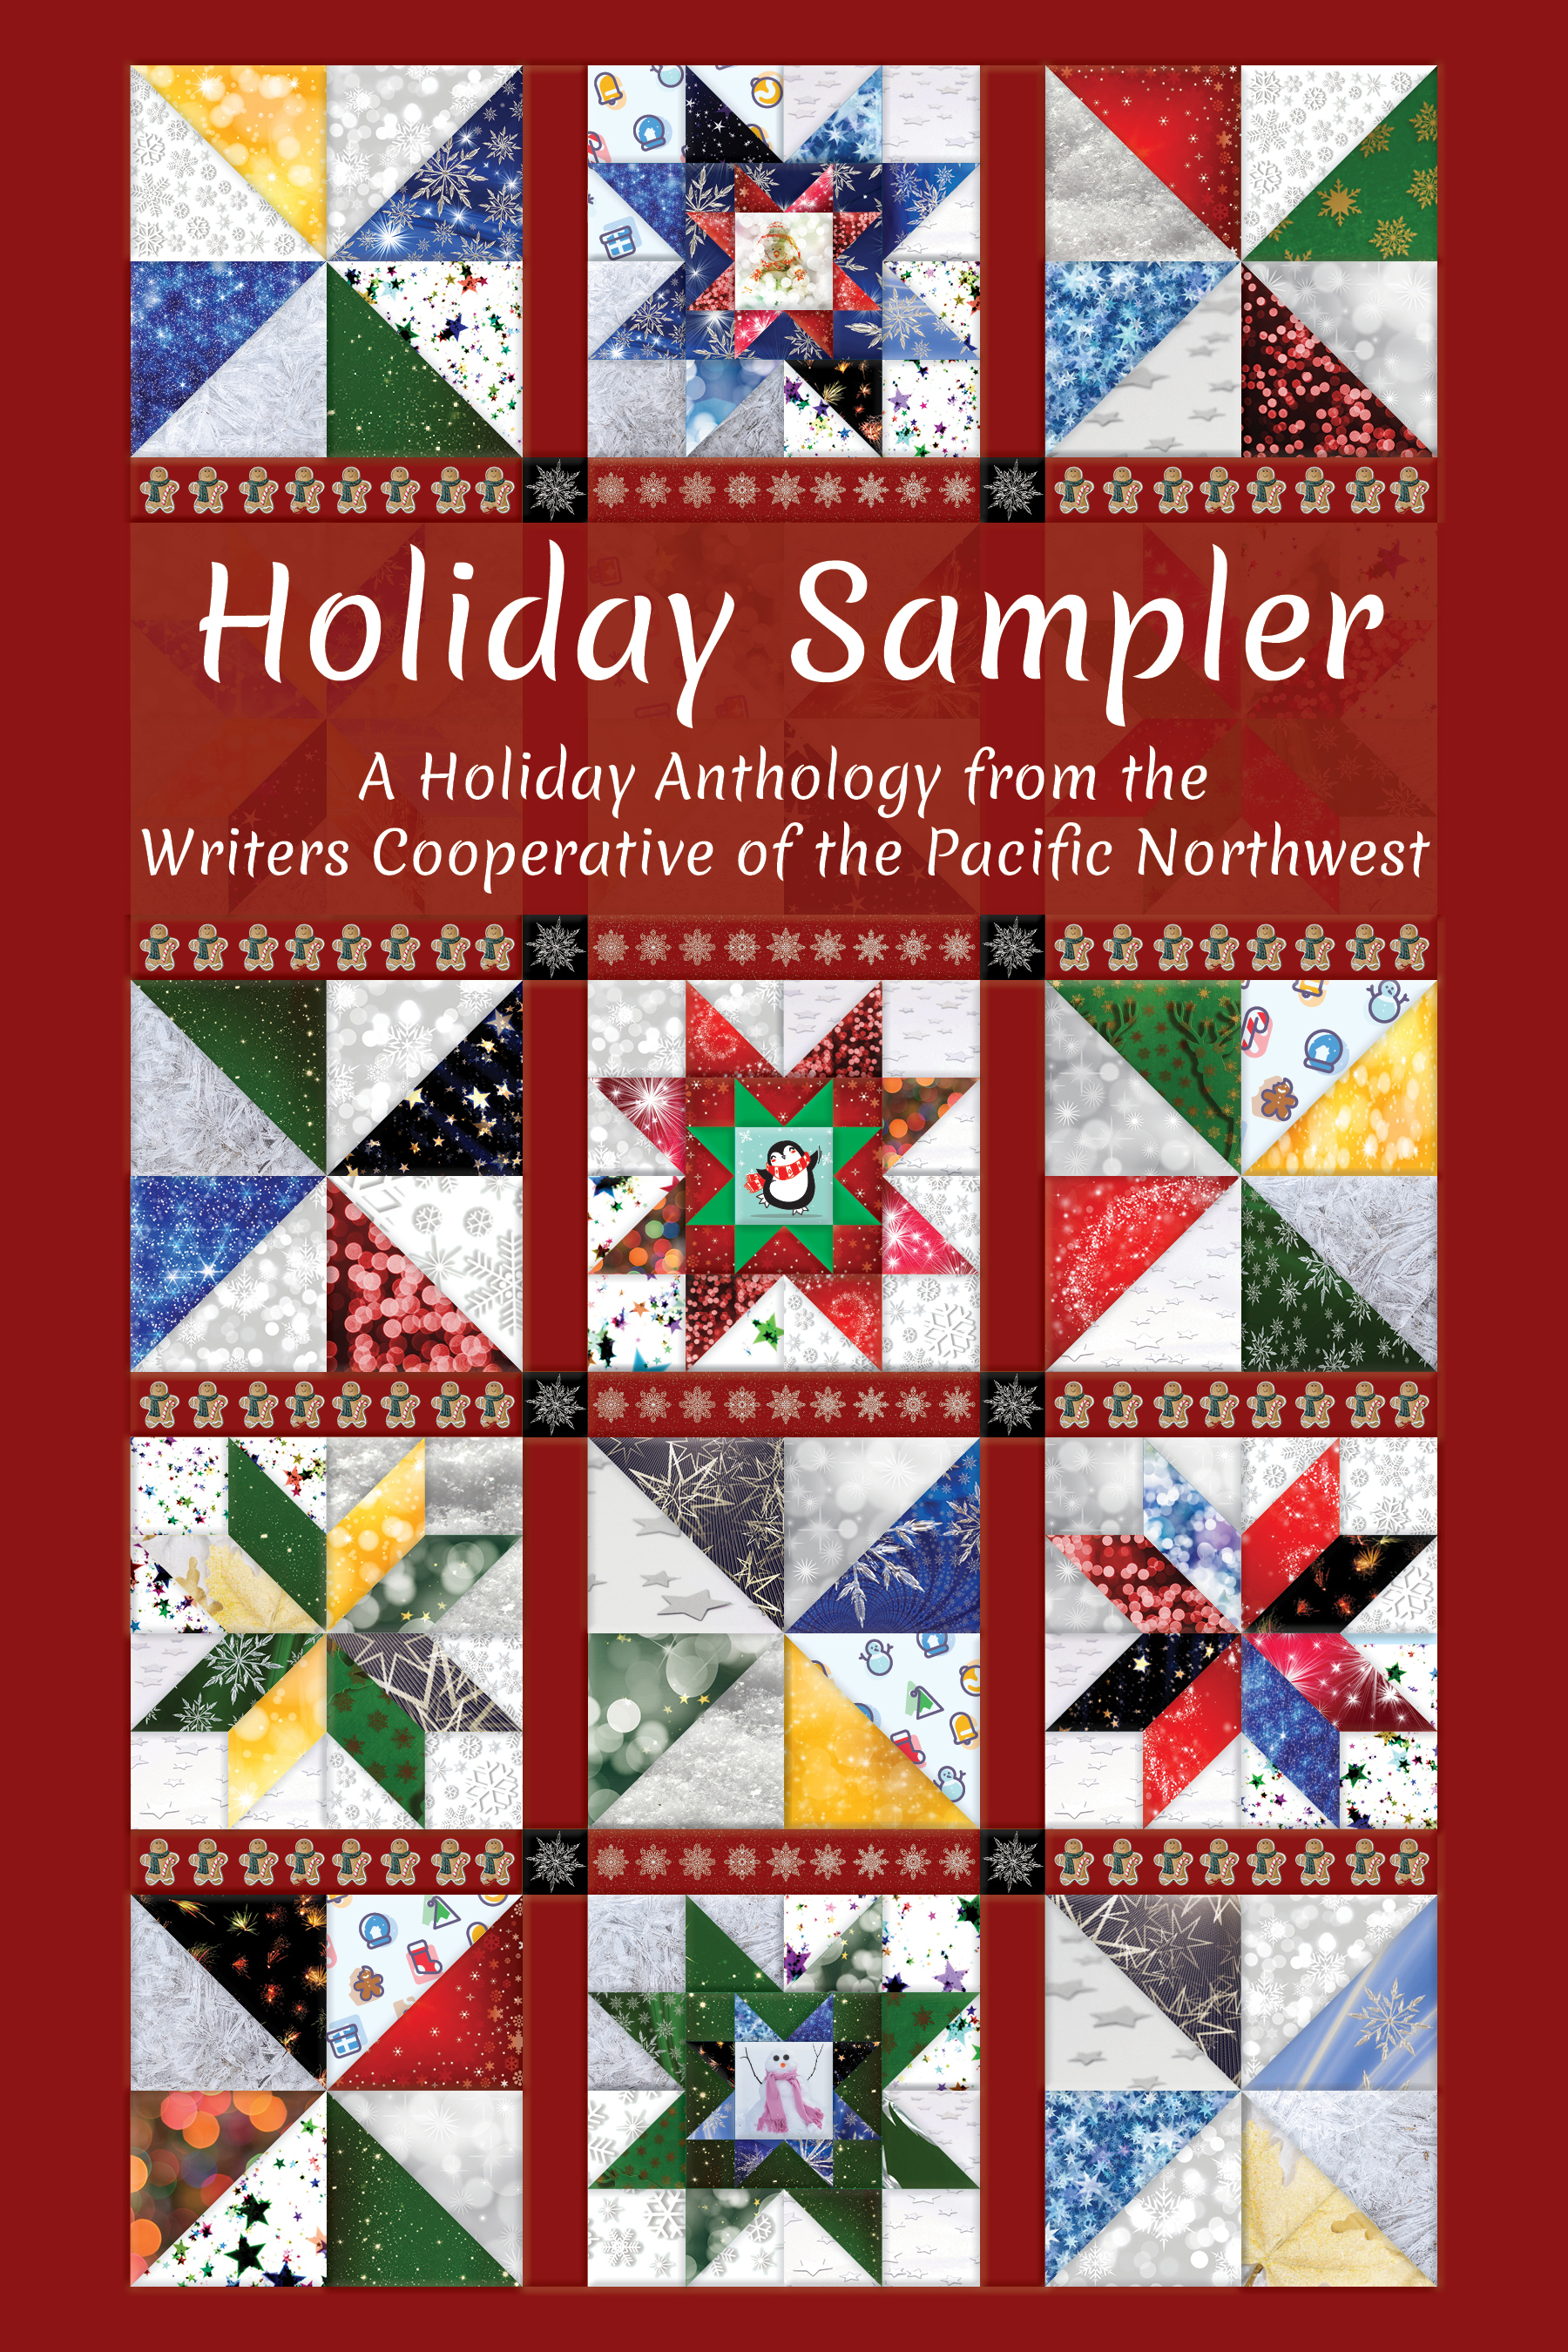 Holiday Sampler by the Writers Cooperative of the Pacific Northwest